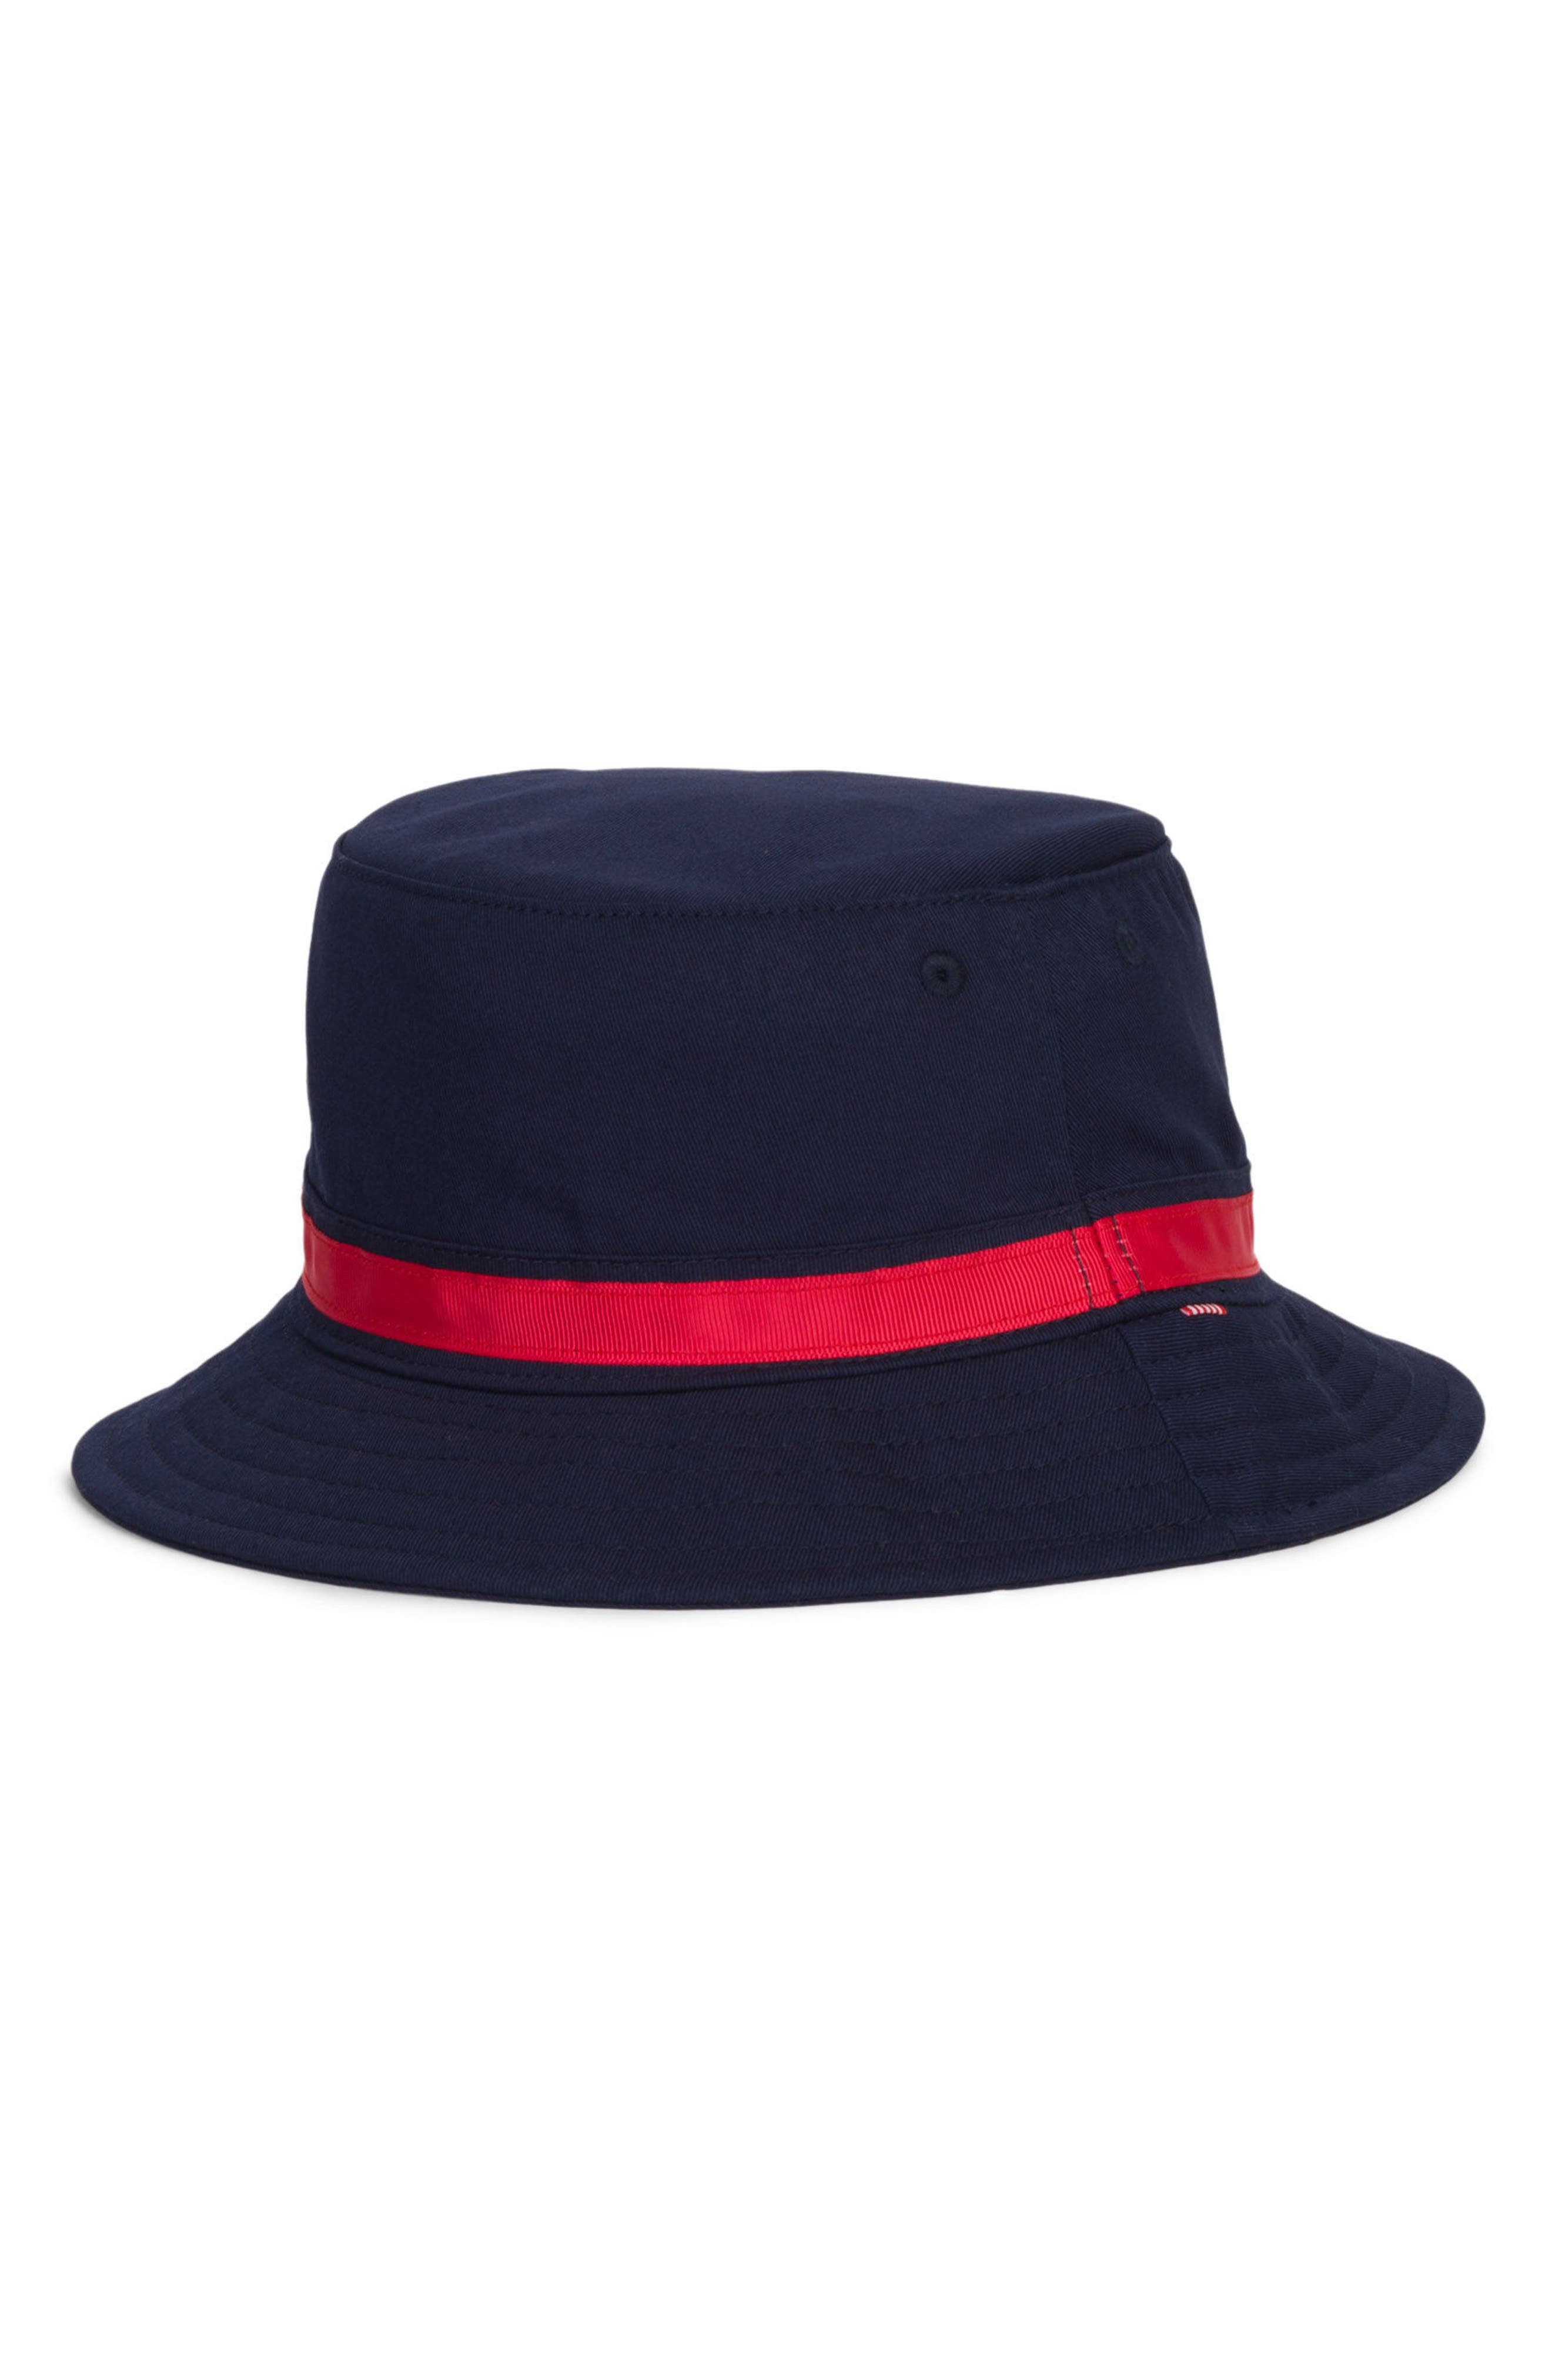 Two-Tone Lake Bucket Hat,                             Main thumbnail 1, color,                             Navy/ Red